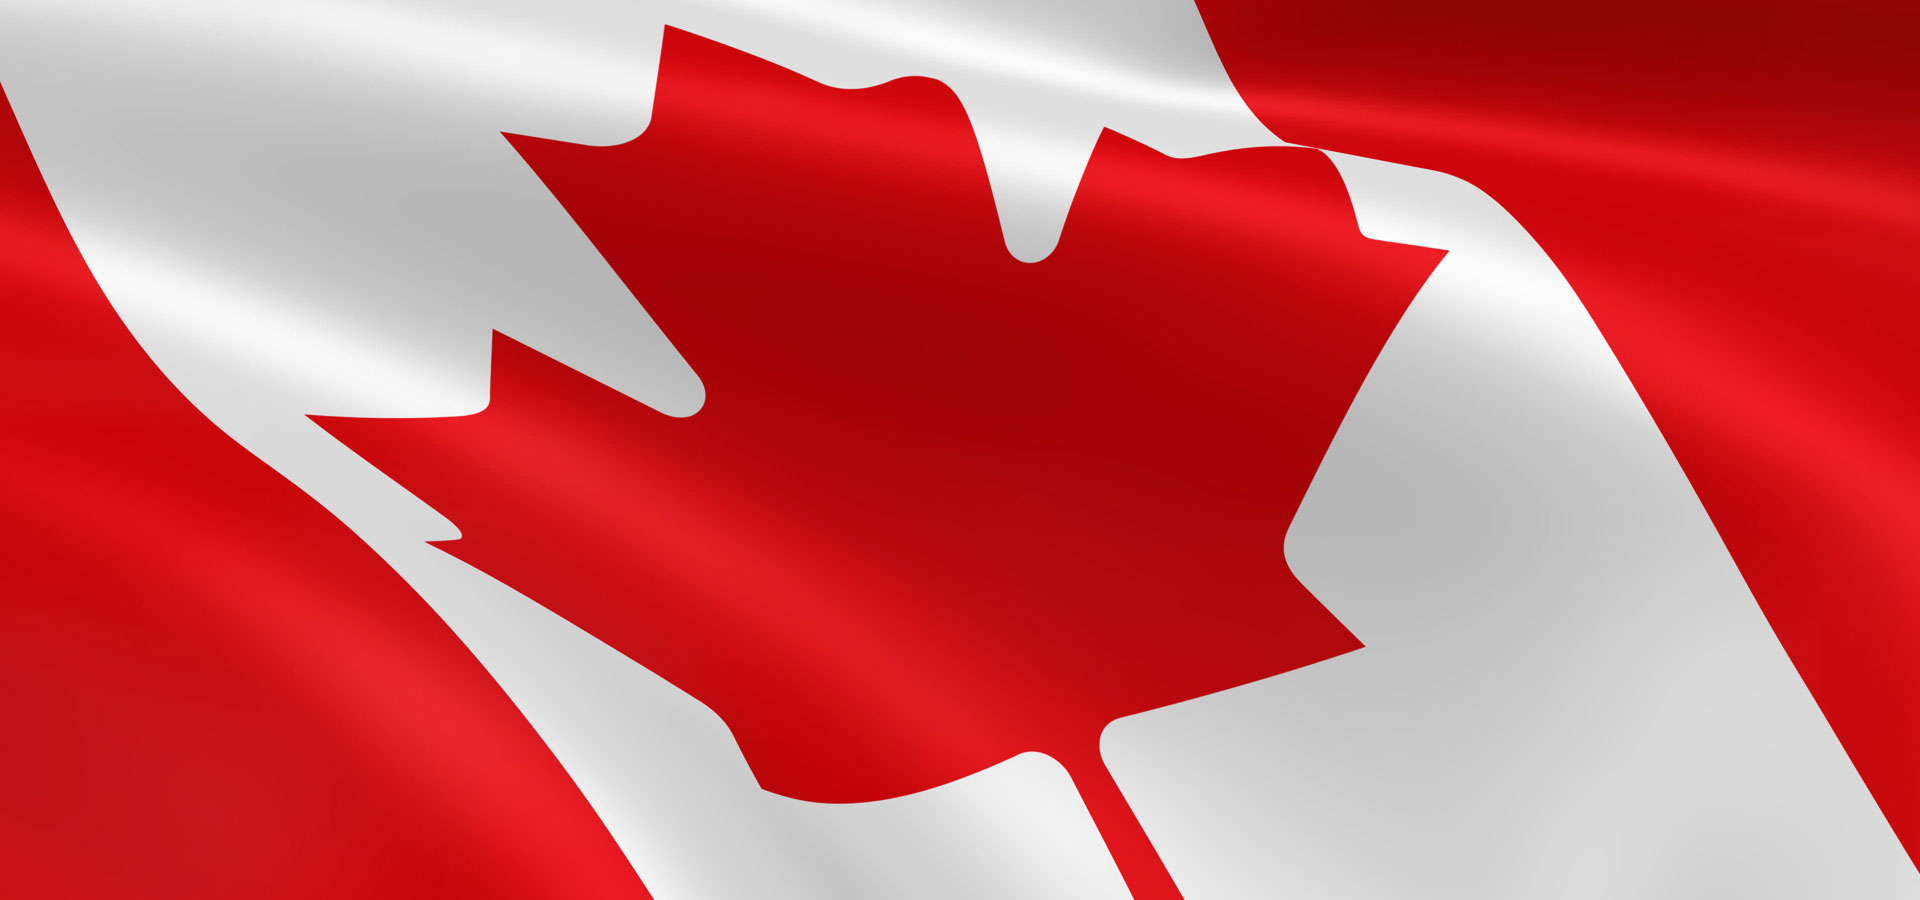 7 Things You Didn't Know About Canada